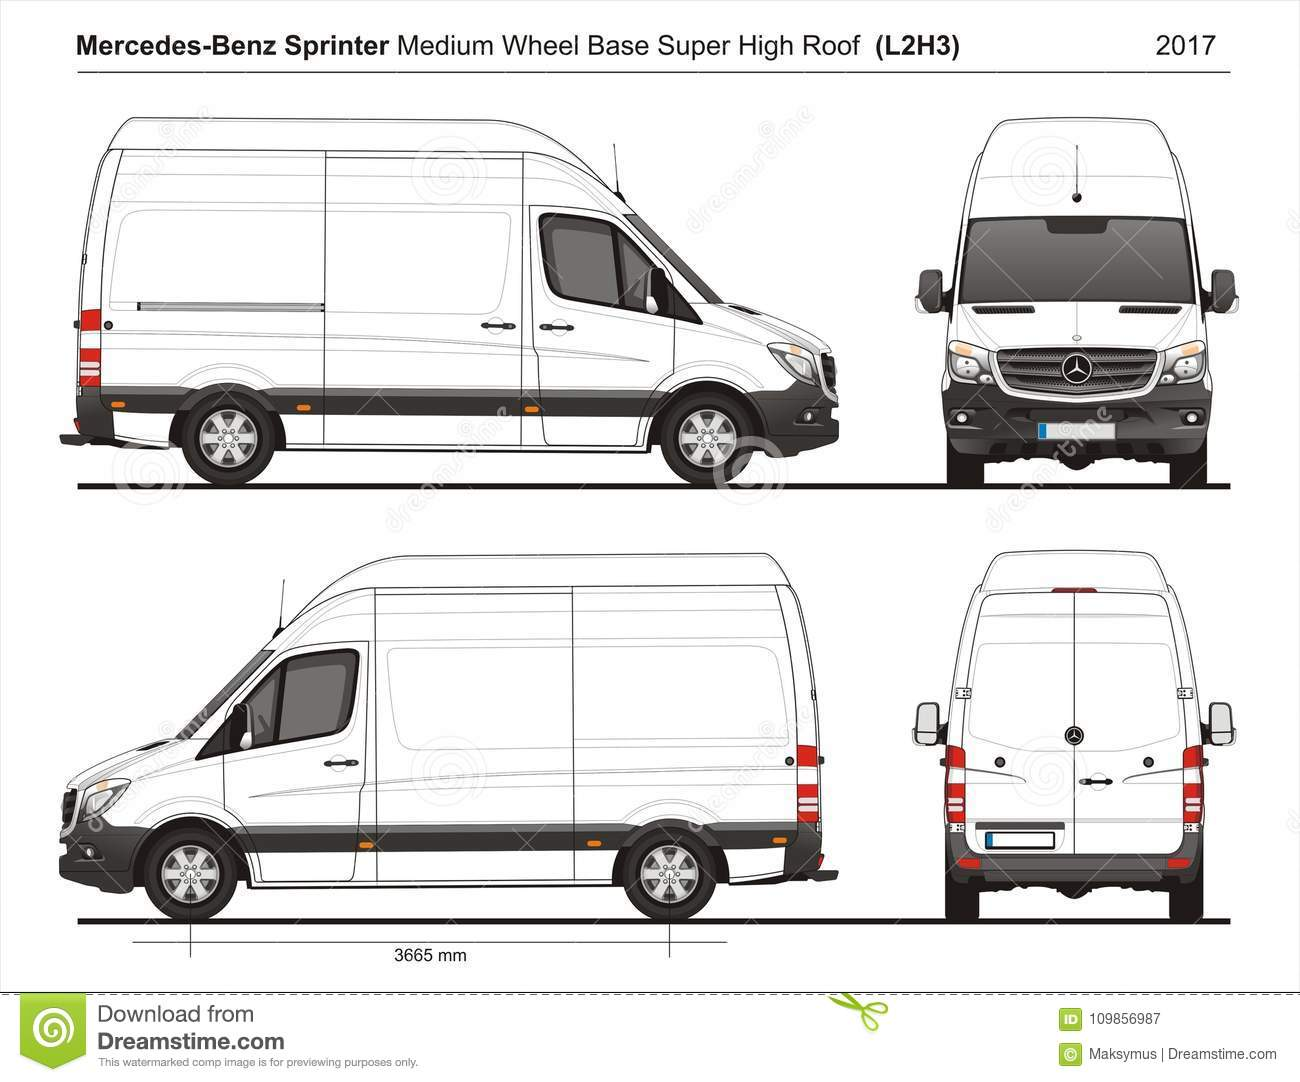 Mercedes Sprinter MWB Super High Roof Cargo Van L2H3 2017 Editorial ...